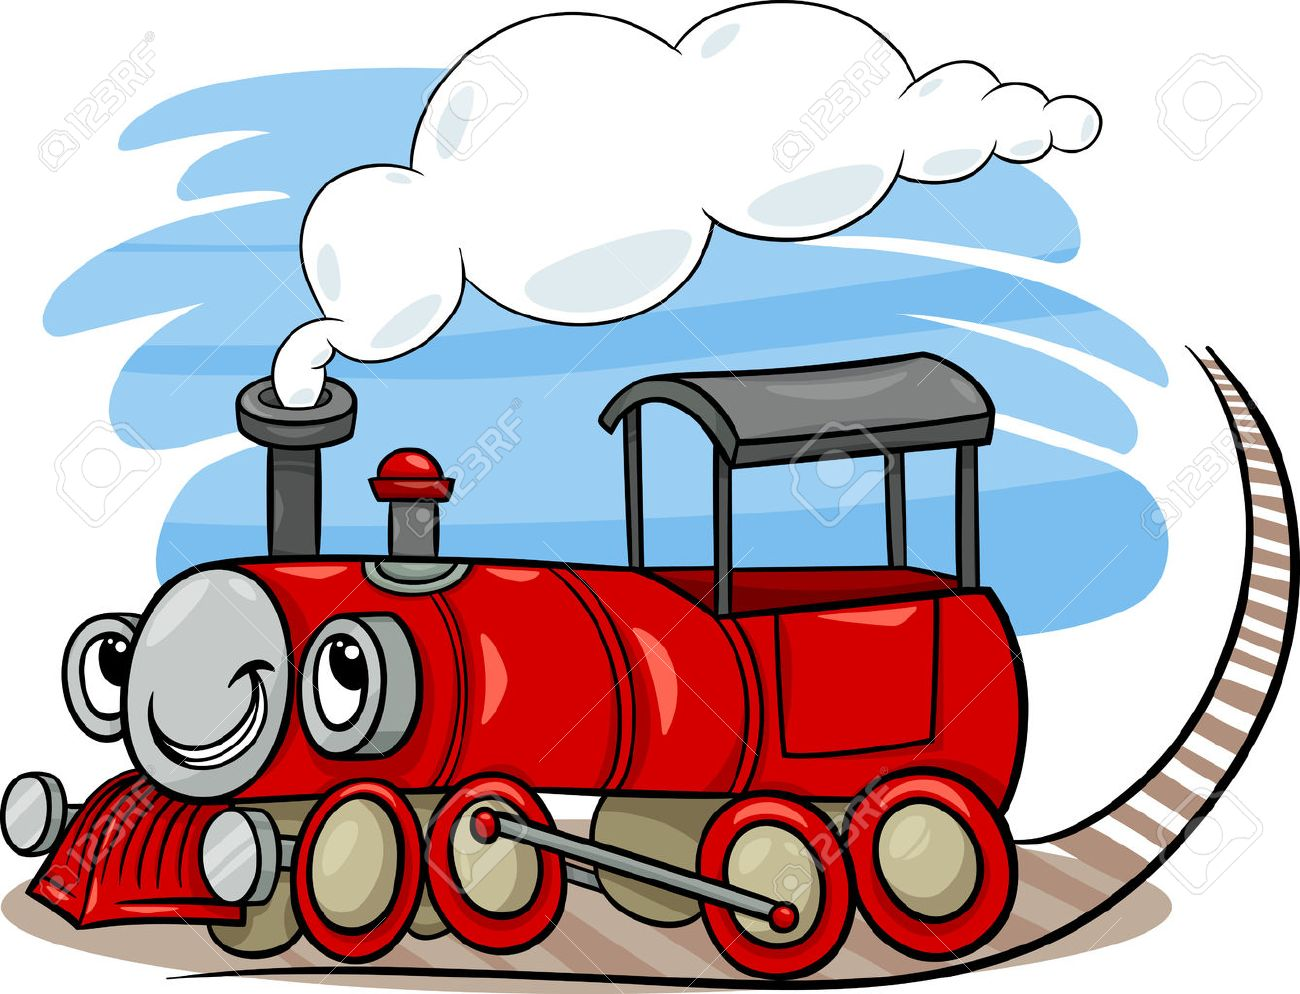 1300x994 Cartoon Illustration Of Funny Steam Engine Locomotive Or Puffer